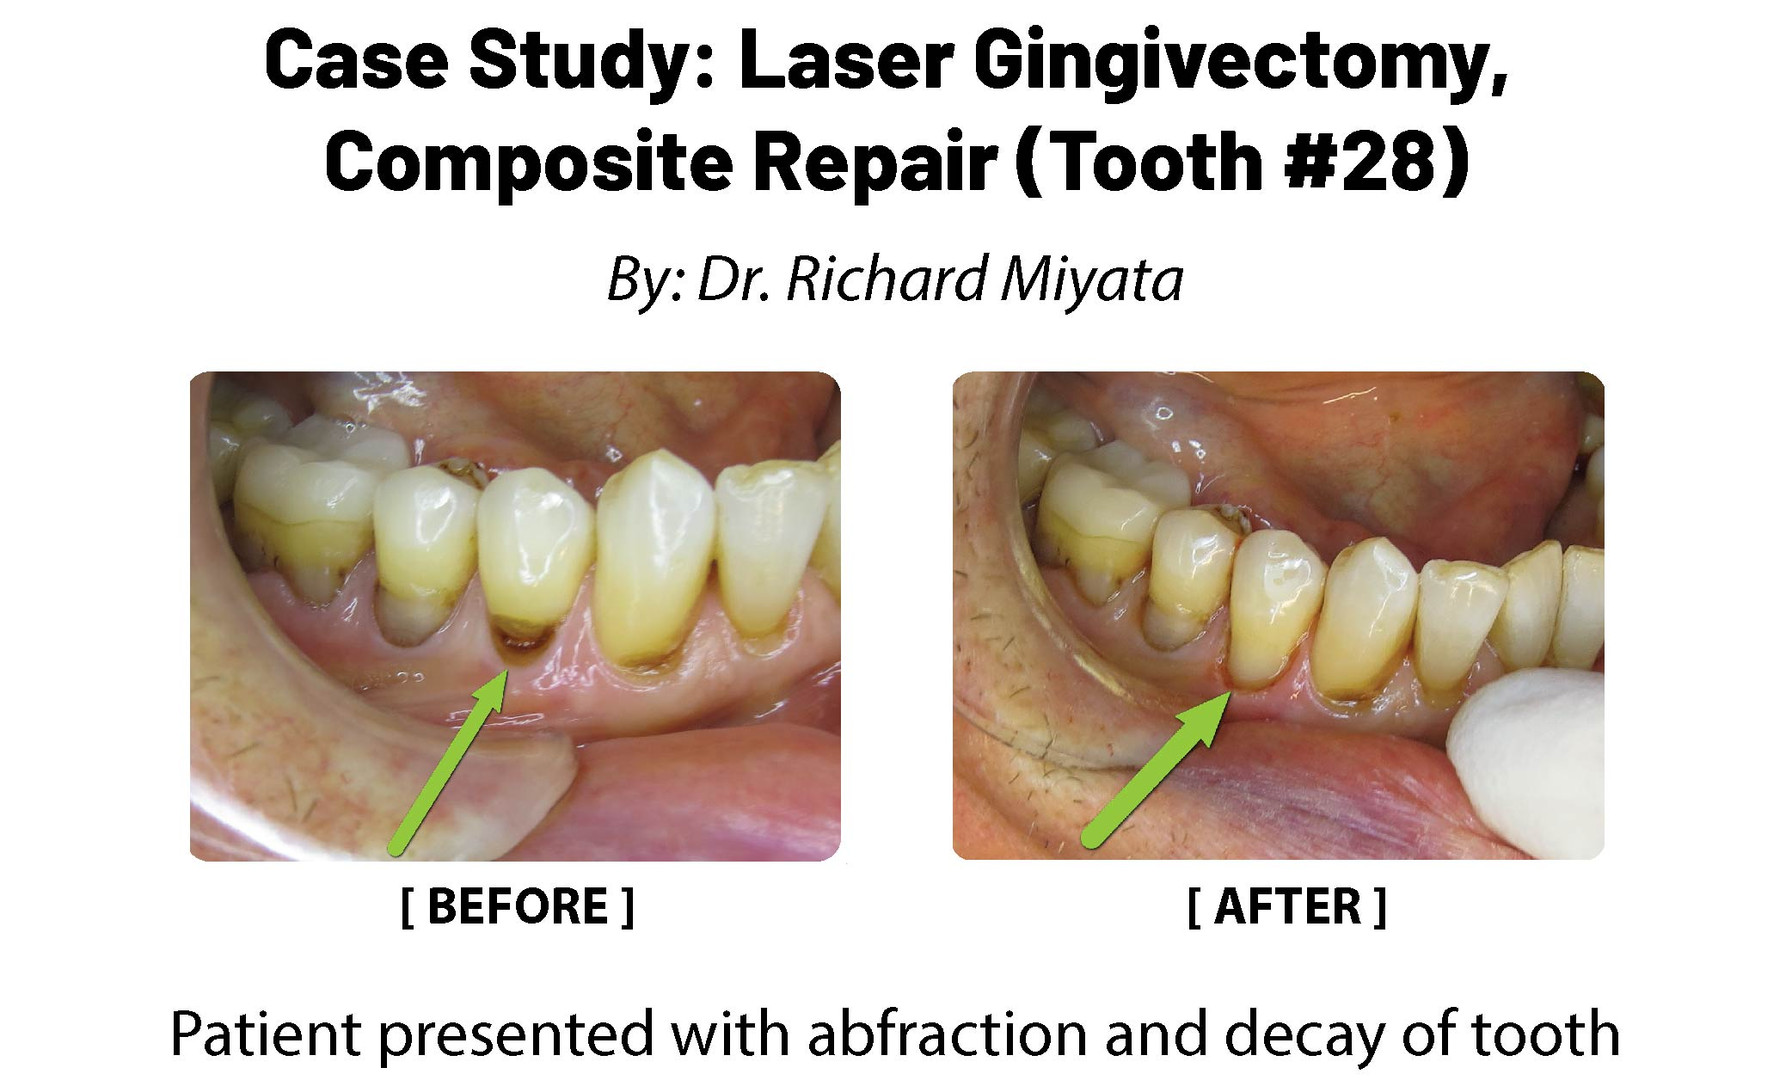 Case Study: Laser Ginviectomy, Composite Repair (Tooth 26)